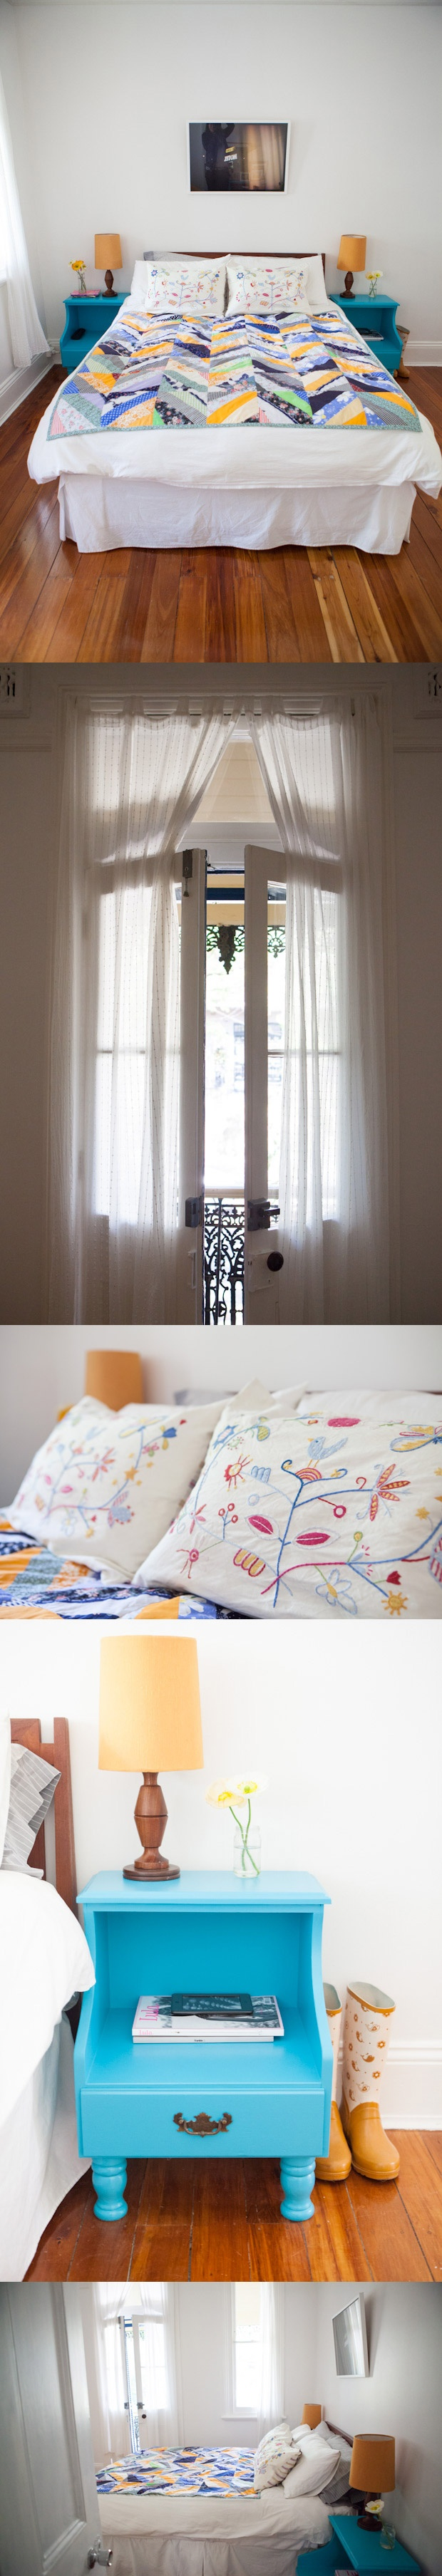 Homes interiors inspiration - Claire Yvonne Evans - Ashka interview #homes #interiors #inspirations #creative #sydney #australia #bedroom #floors #floorboards #bluetables #quiltedblanket #whitecurtains #embroideredpillows